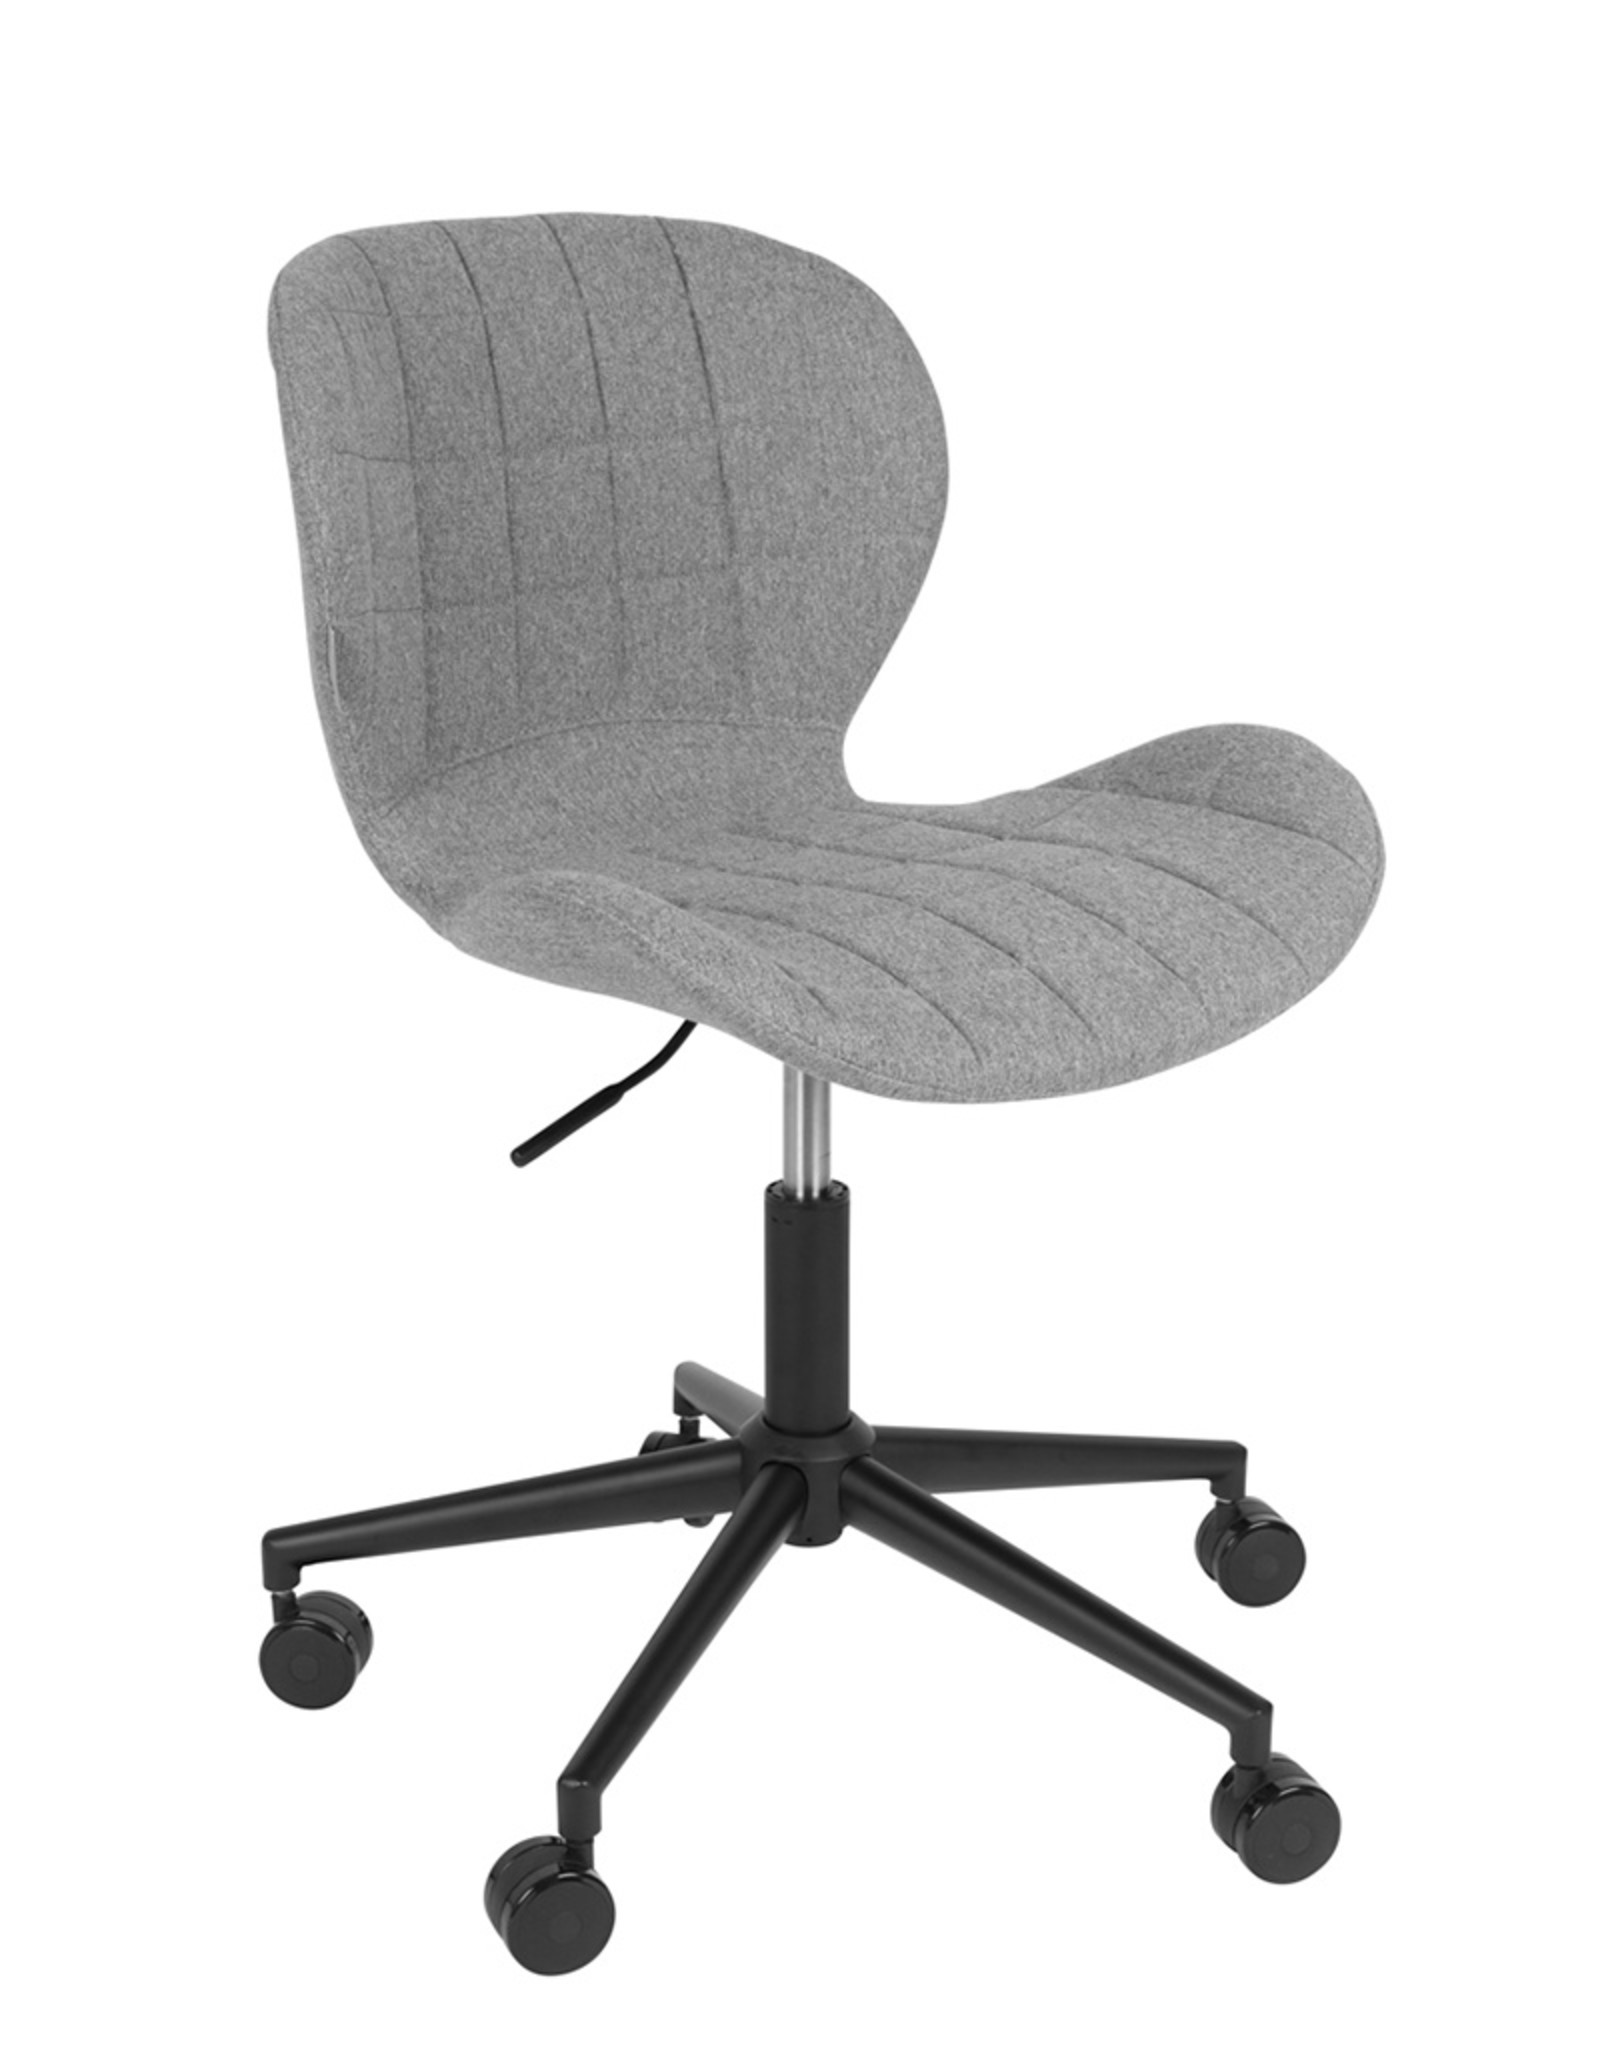 ZUIVER BV OMG Office Chair